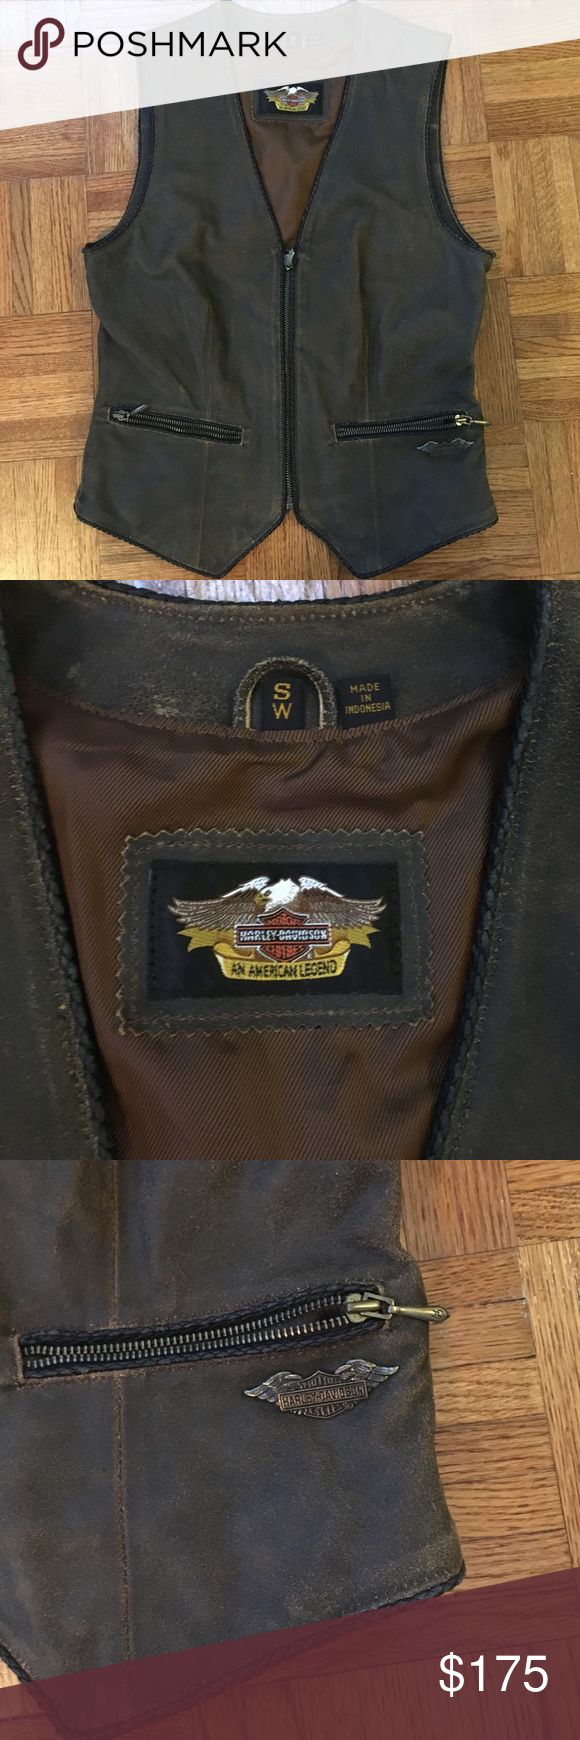 Women's Vintage Harley Davidson Vest It is used and could probably benefit from visiting a good leather shop for polishing. The leather is a little dried out. It is a really beautiful vest though. This is my mom's, and I have some really awesome memories of her wearing it when I was a kid. Let me know what questions you have. Harley-Davidson Jackets & Coats Vests